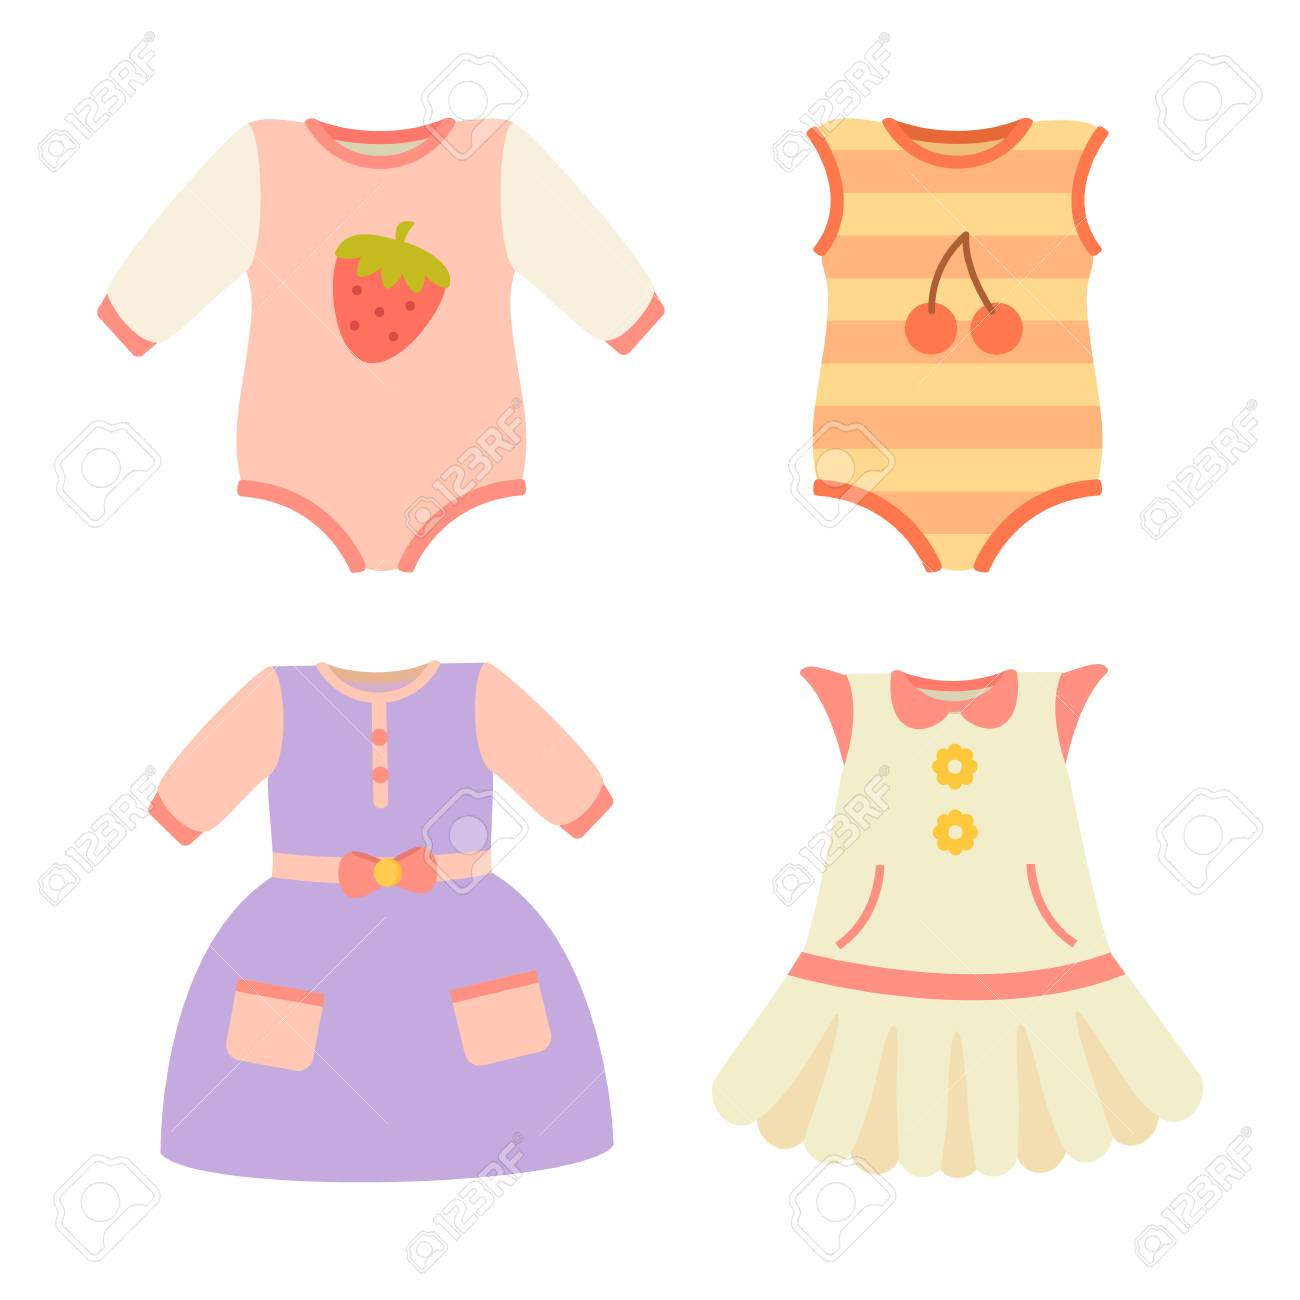 Baby Clothes Collection Dress Vector Illustration Royalty Free